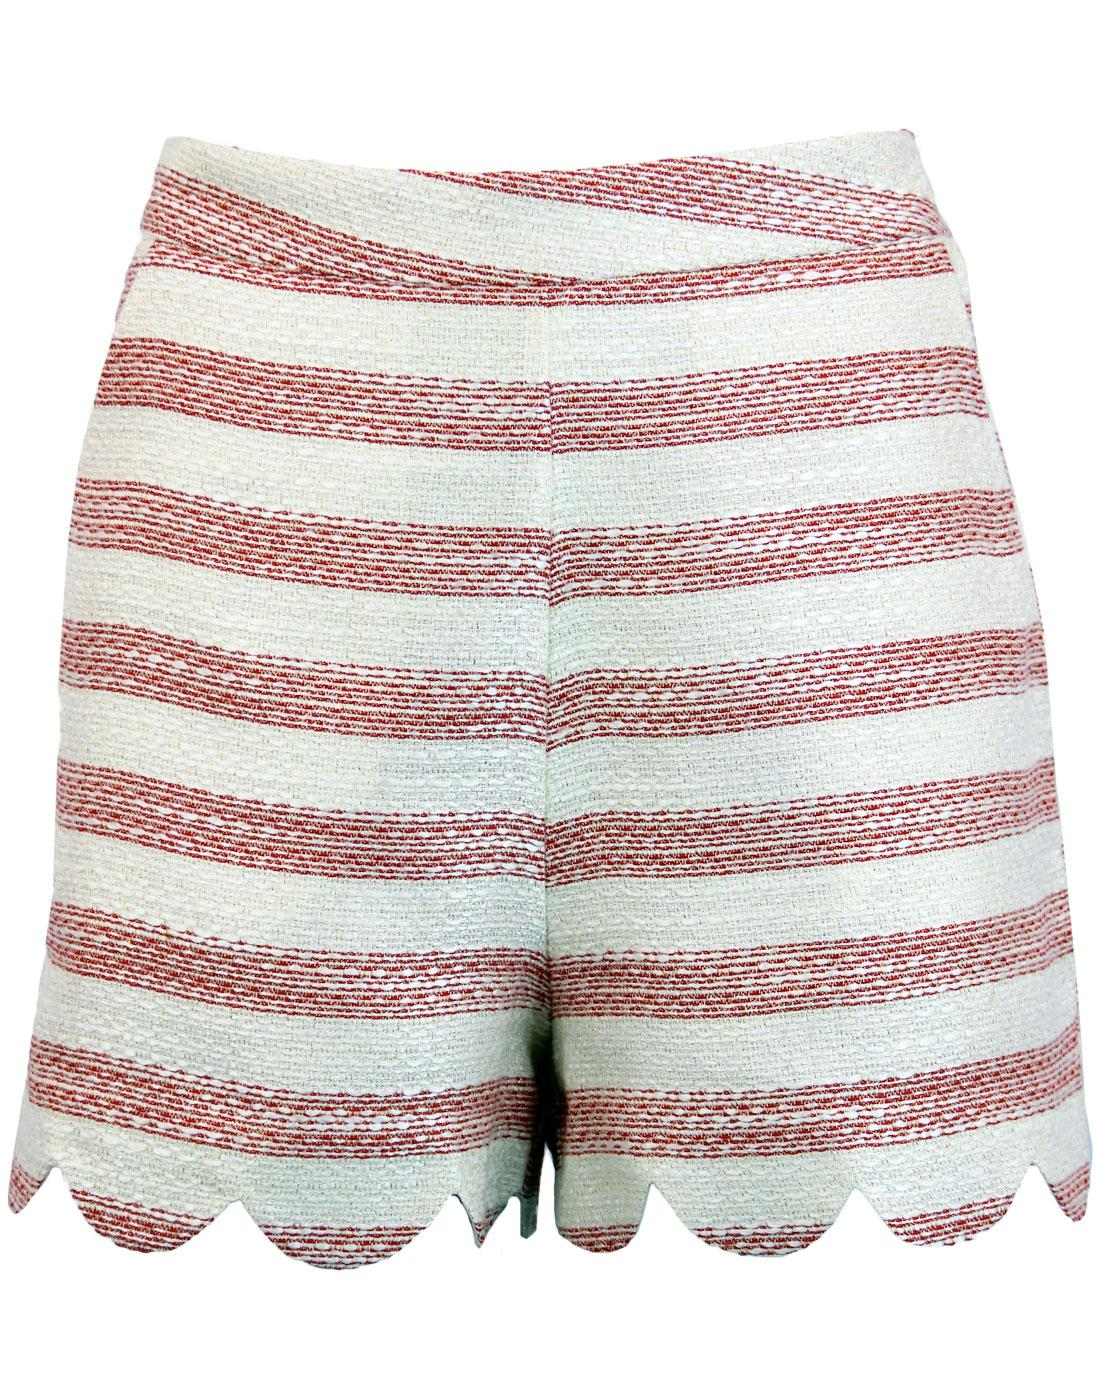 TRAFFIC PEOPLE Retro 1960s Striped Scallop Shorts